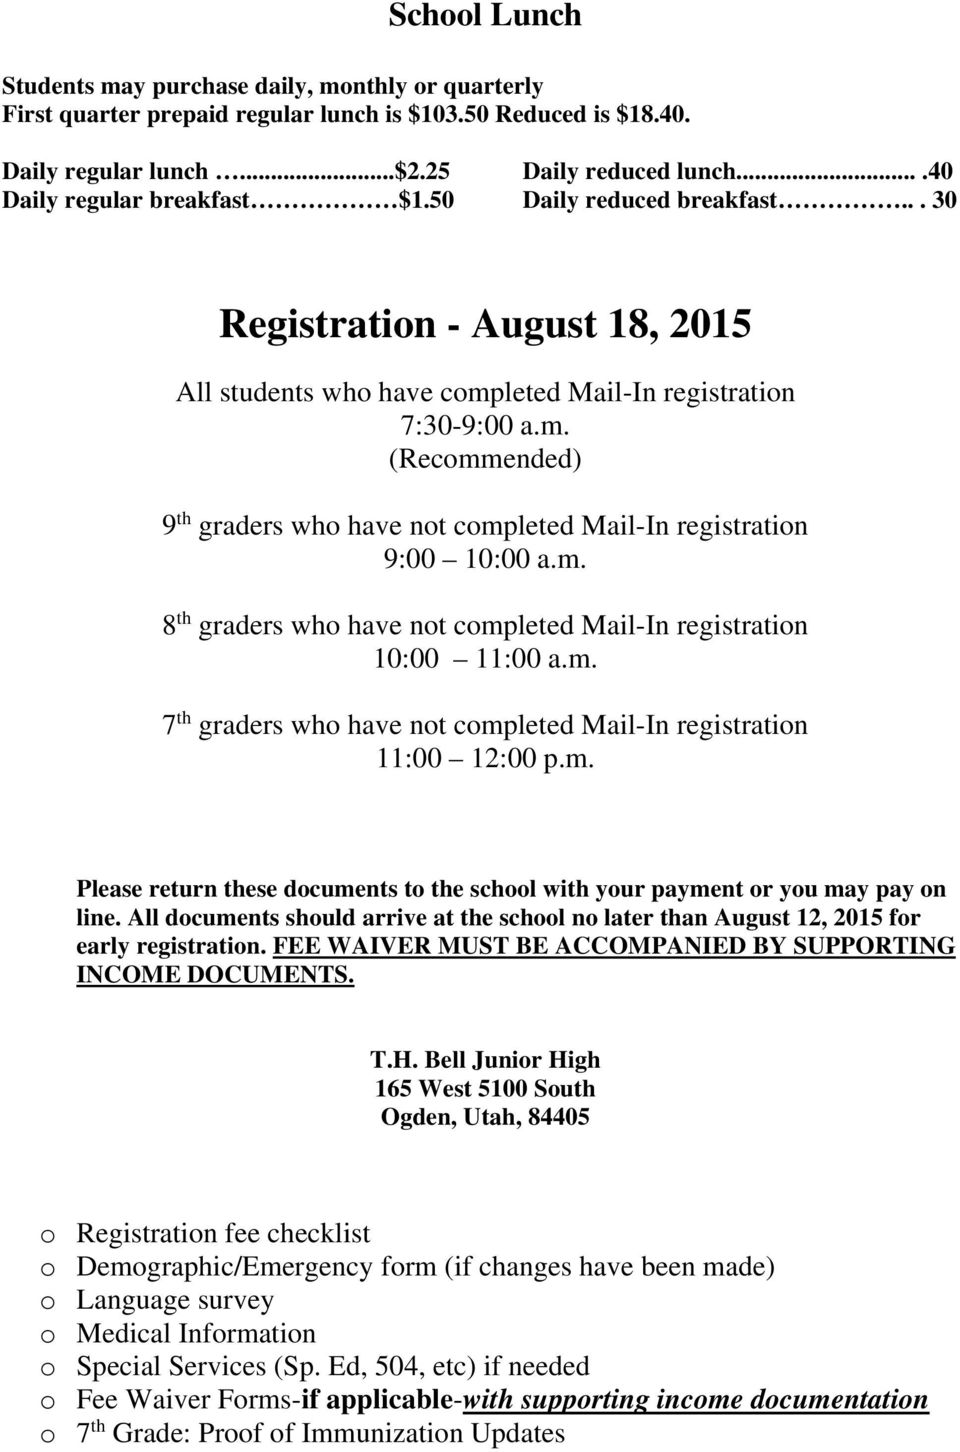 leted Mail-In registration 7:30-9:00 a.m. (Recommended) 9 th graders who have not completed Mail-In registration 9:00 10:00 a.m. 8 th graders who have not completed Mail-In registration 10:00 11:00 a.